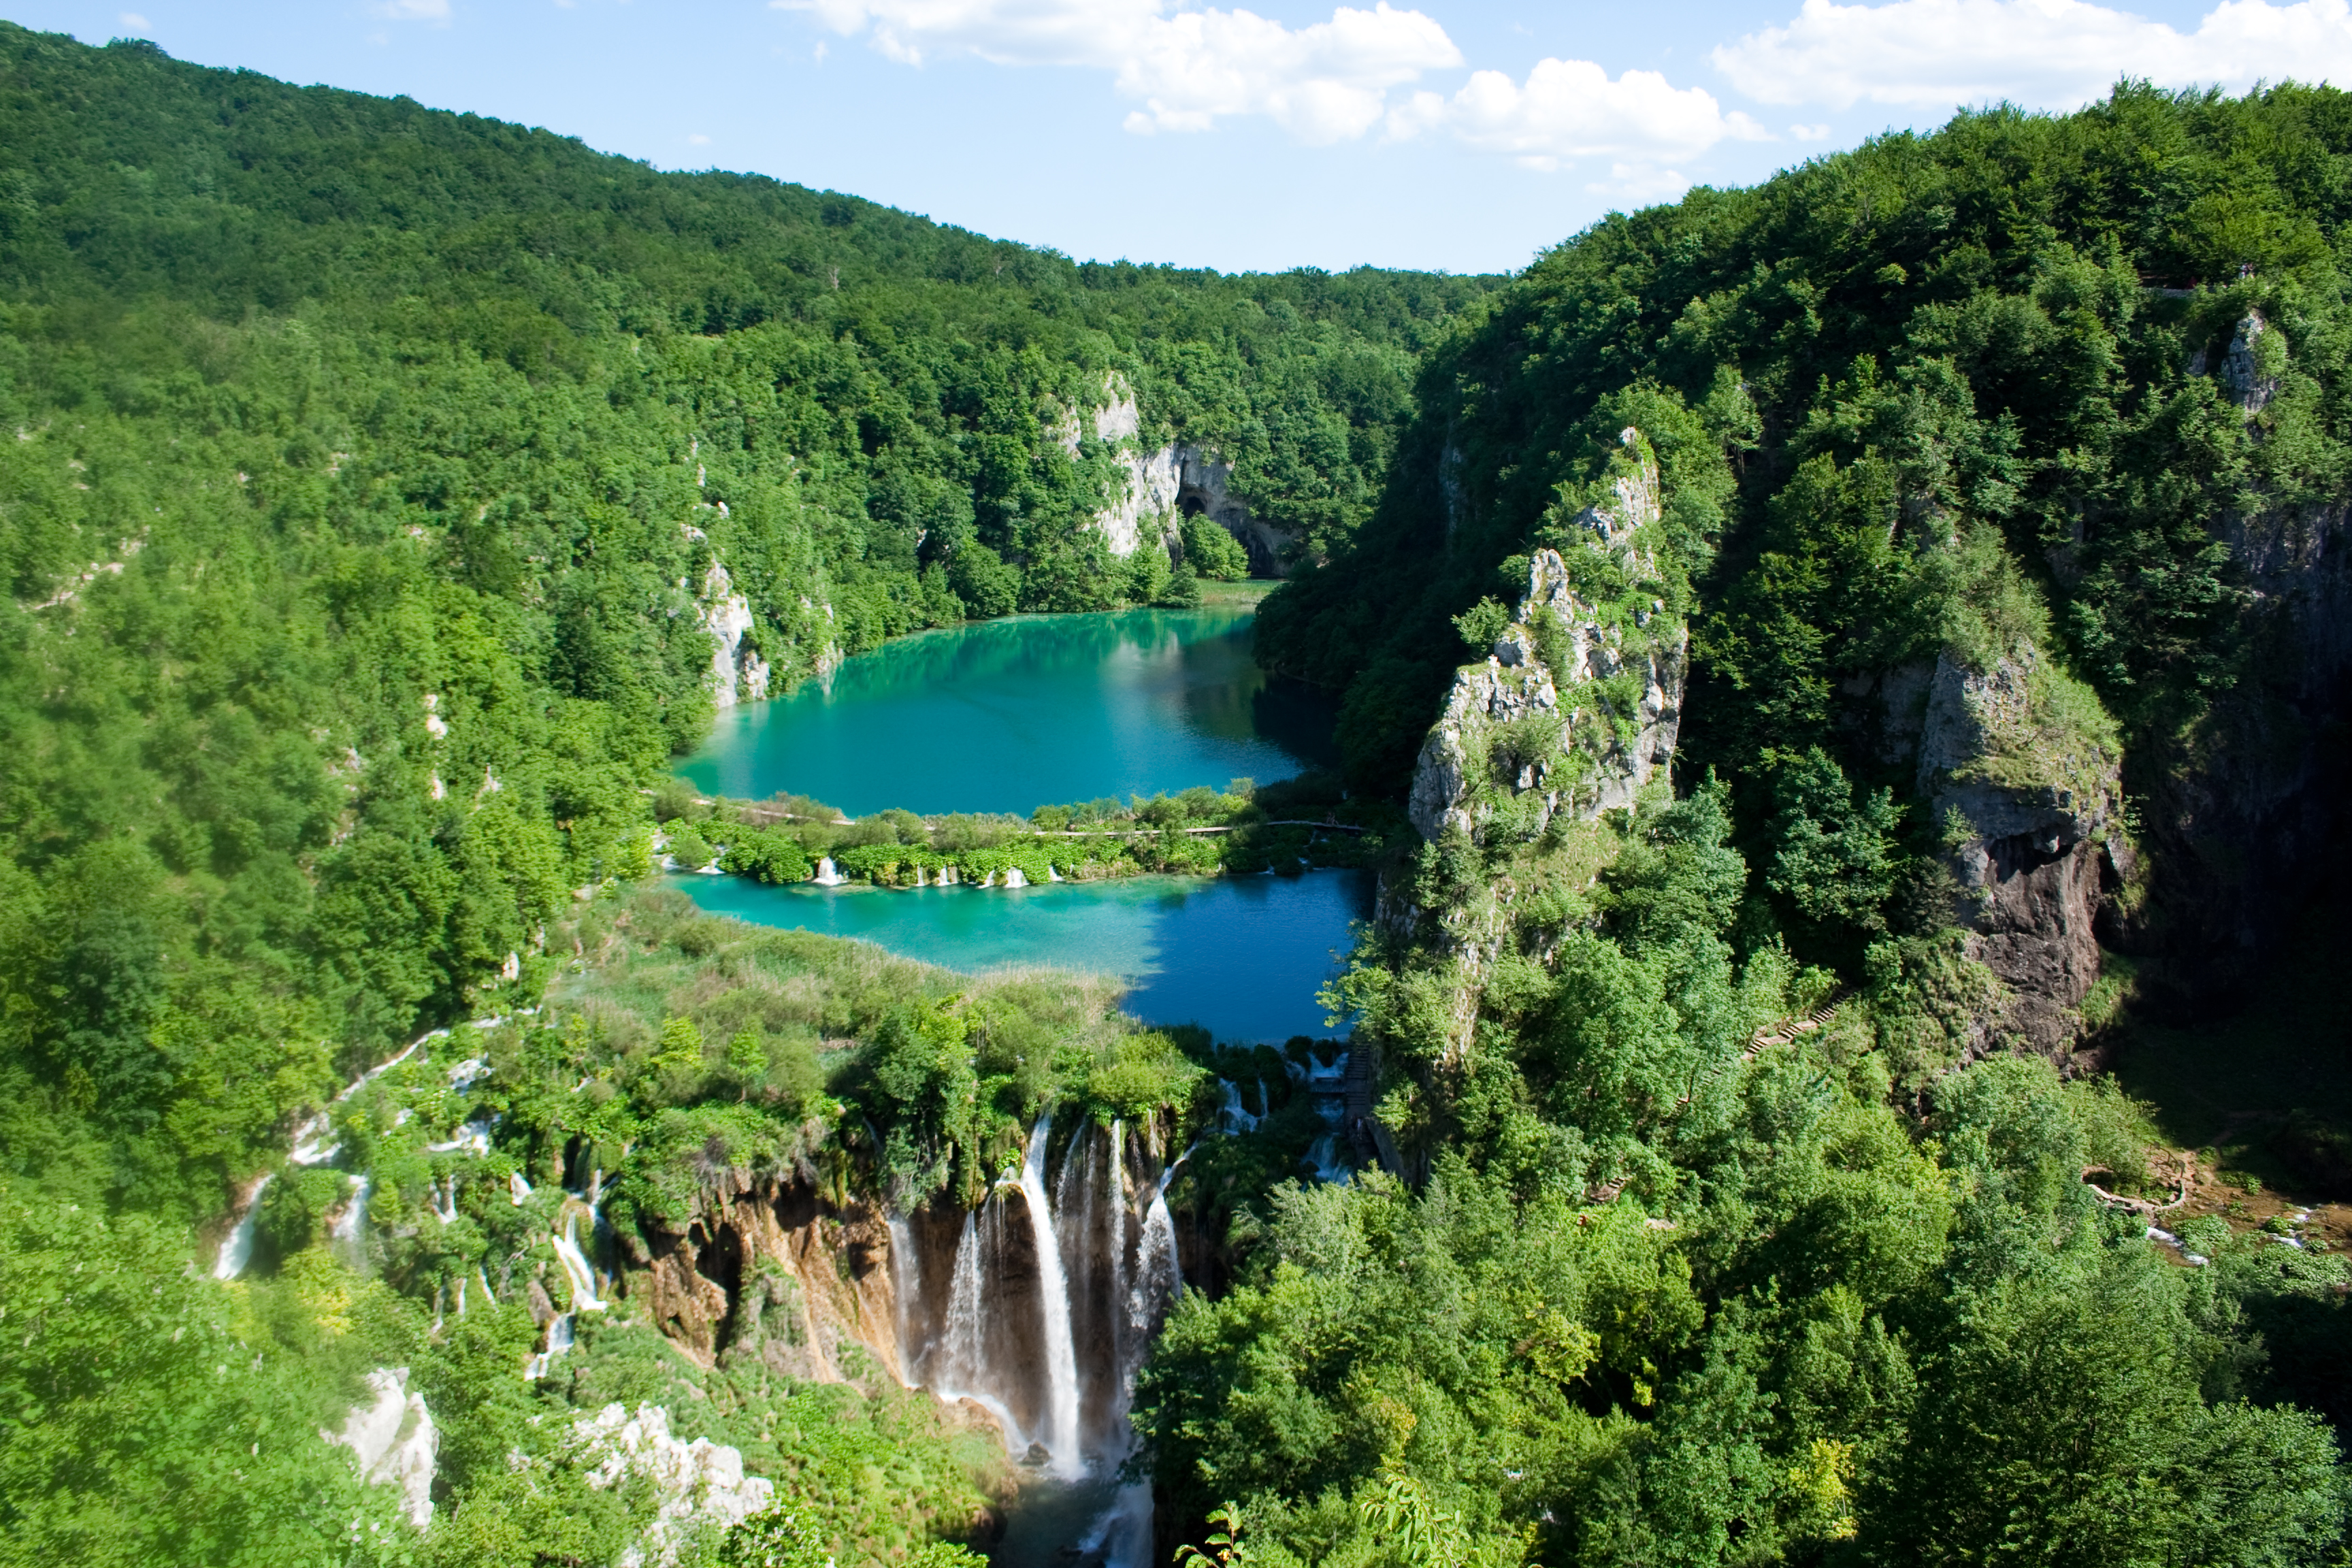 Plitvice Lakes National Park, a UNESCO World Heritage Site. Photo taken on June 9, 2010.